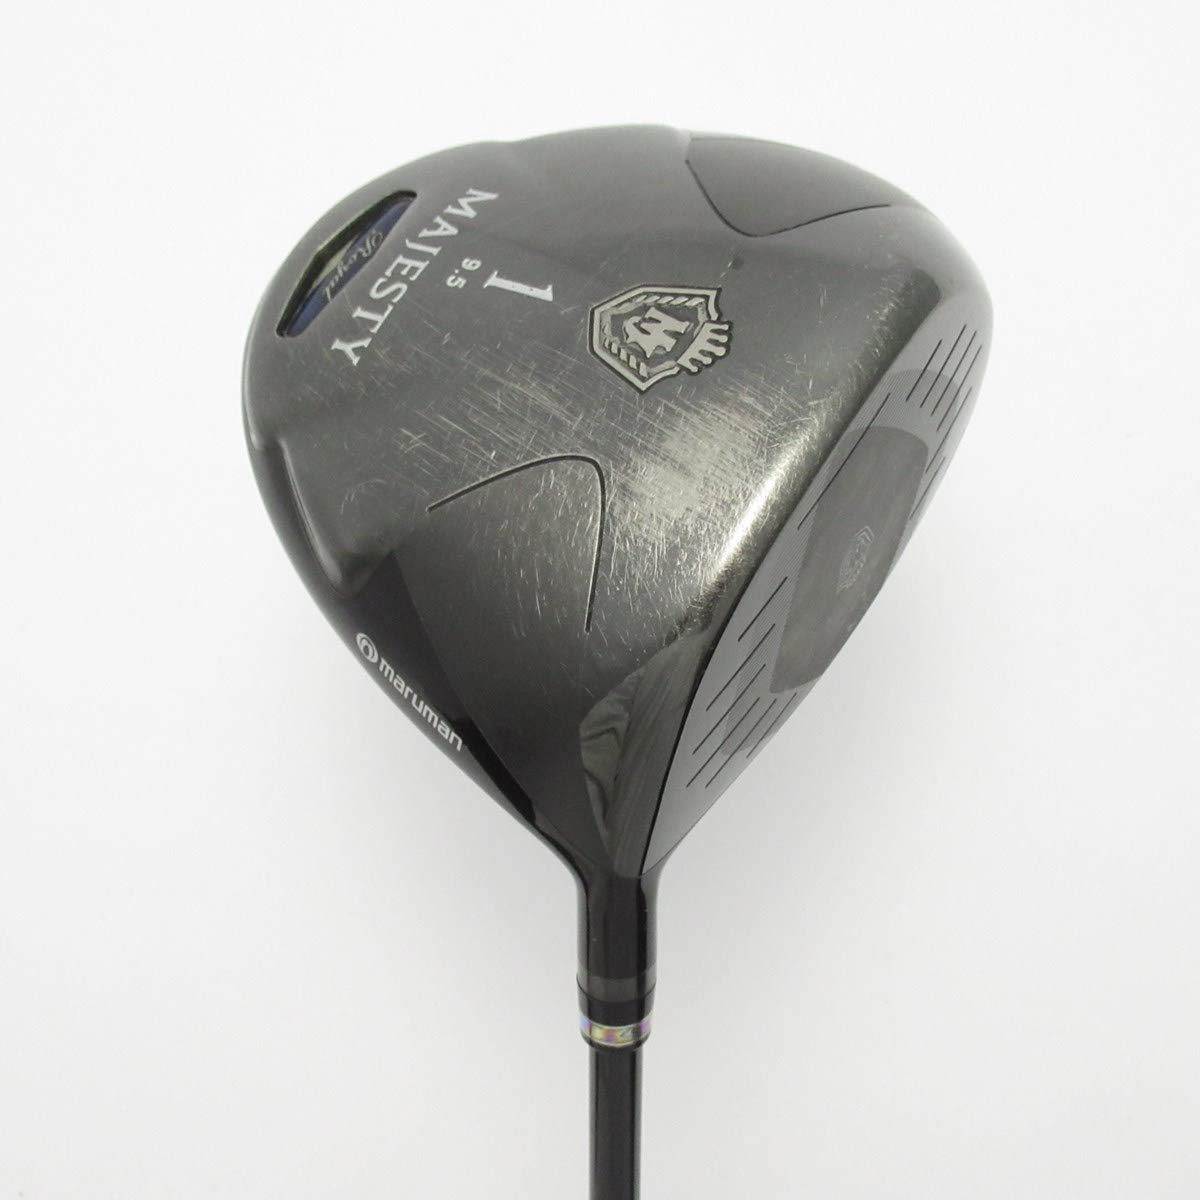 【中古】マルマン MAJESTY MAJESTY ROYAL BLACK(2014) ドライバー Tour AD MJ-5 B07T7WR8QP  S